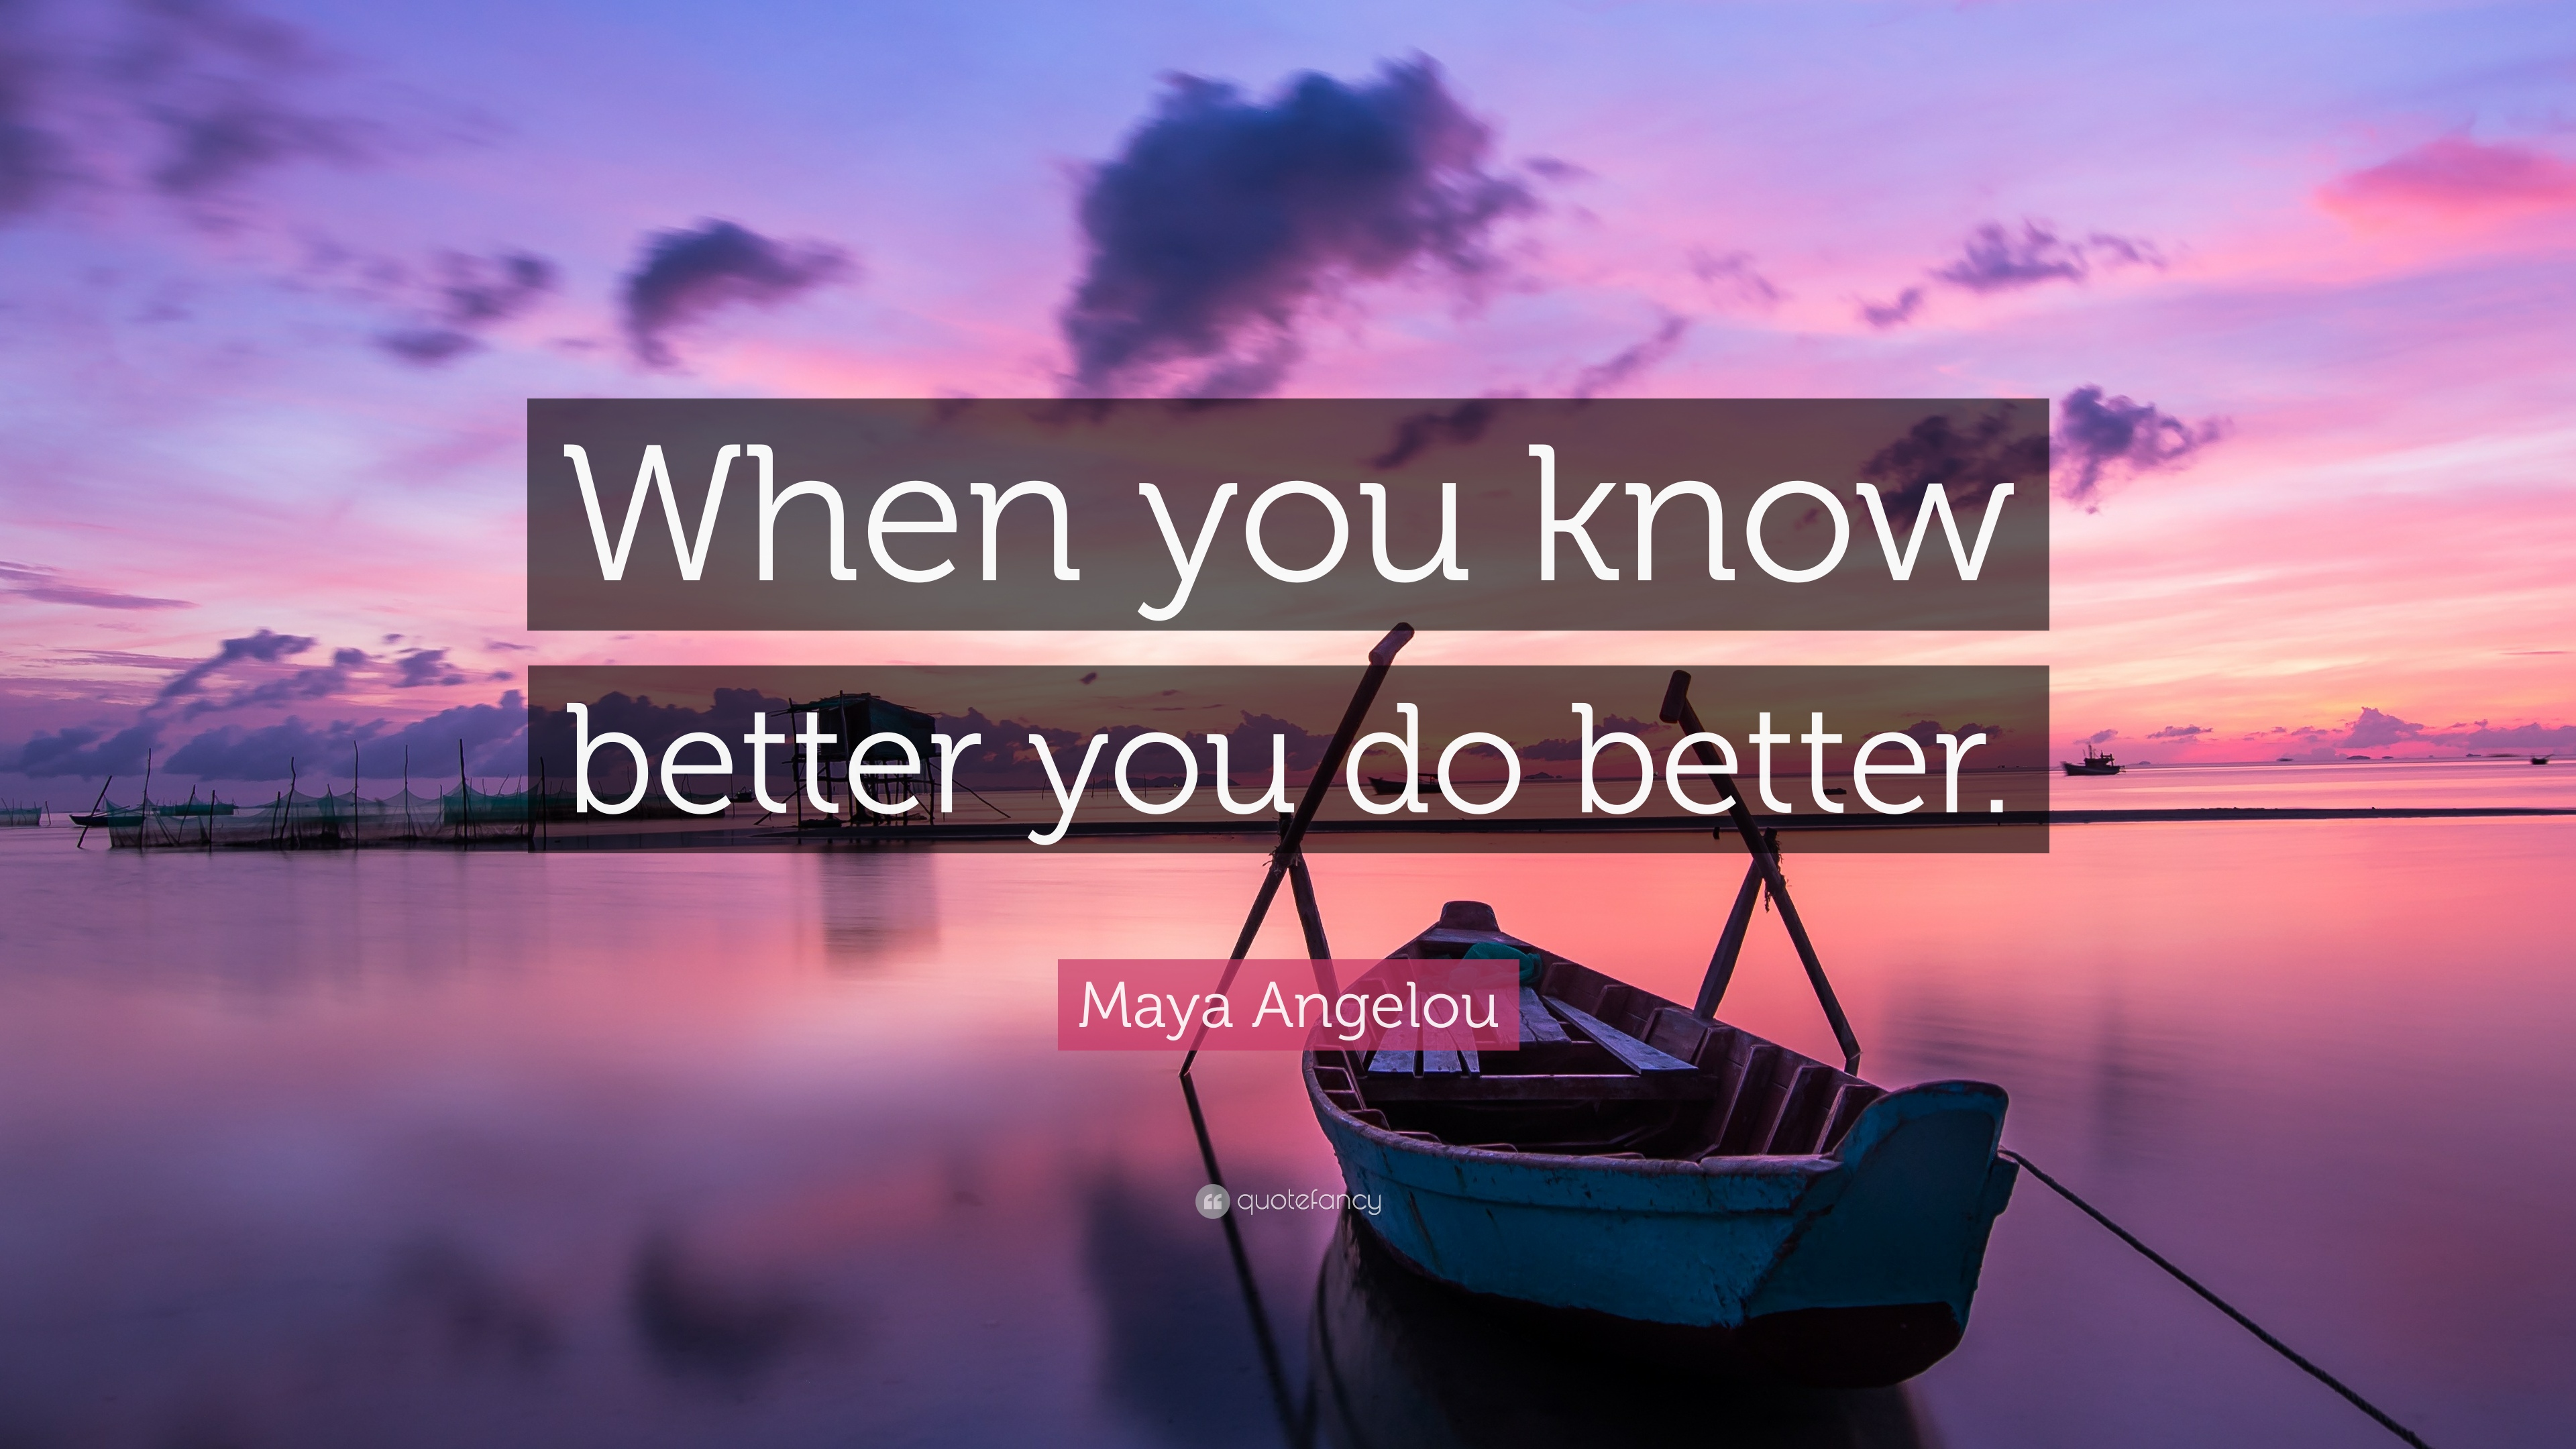 Love Relationship Quotes Wallpaper Maya Angelou Quote When You Know Better You Do Better